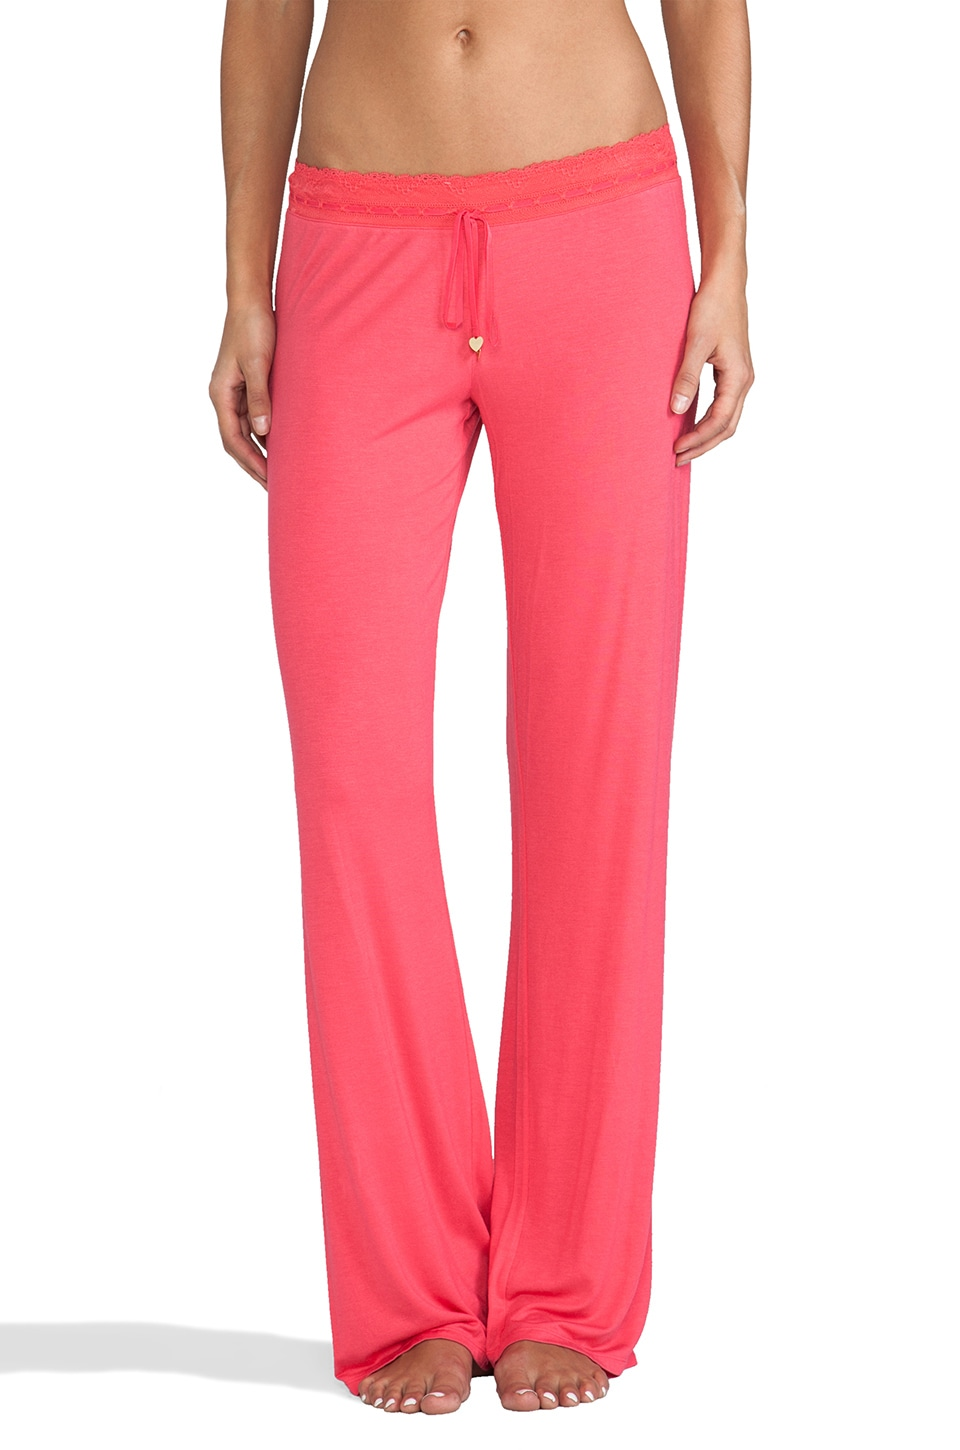 Juicy Couture Sleep Essential Pant in Geranium